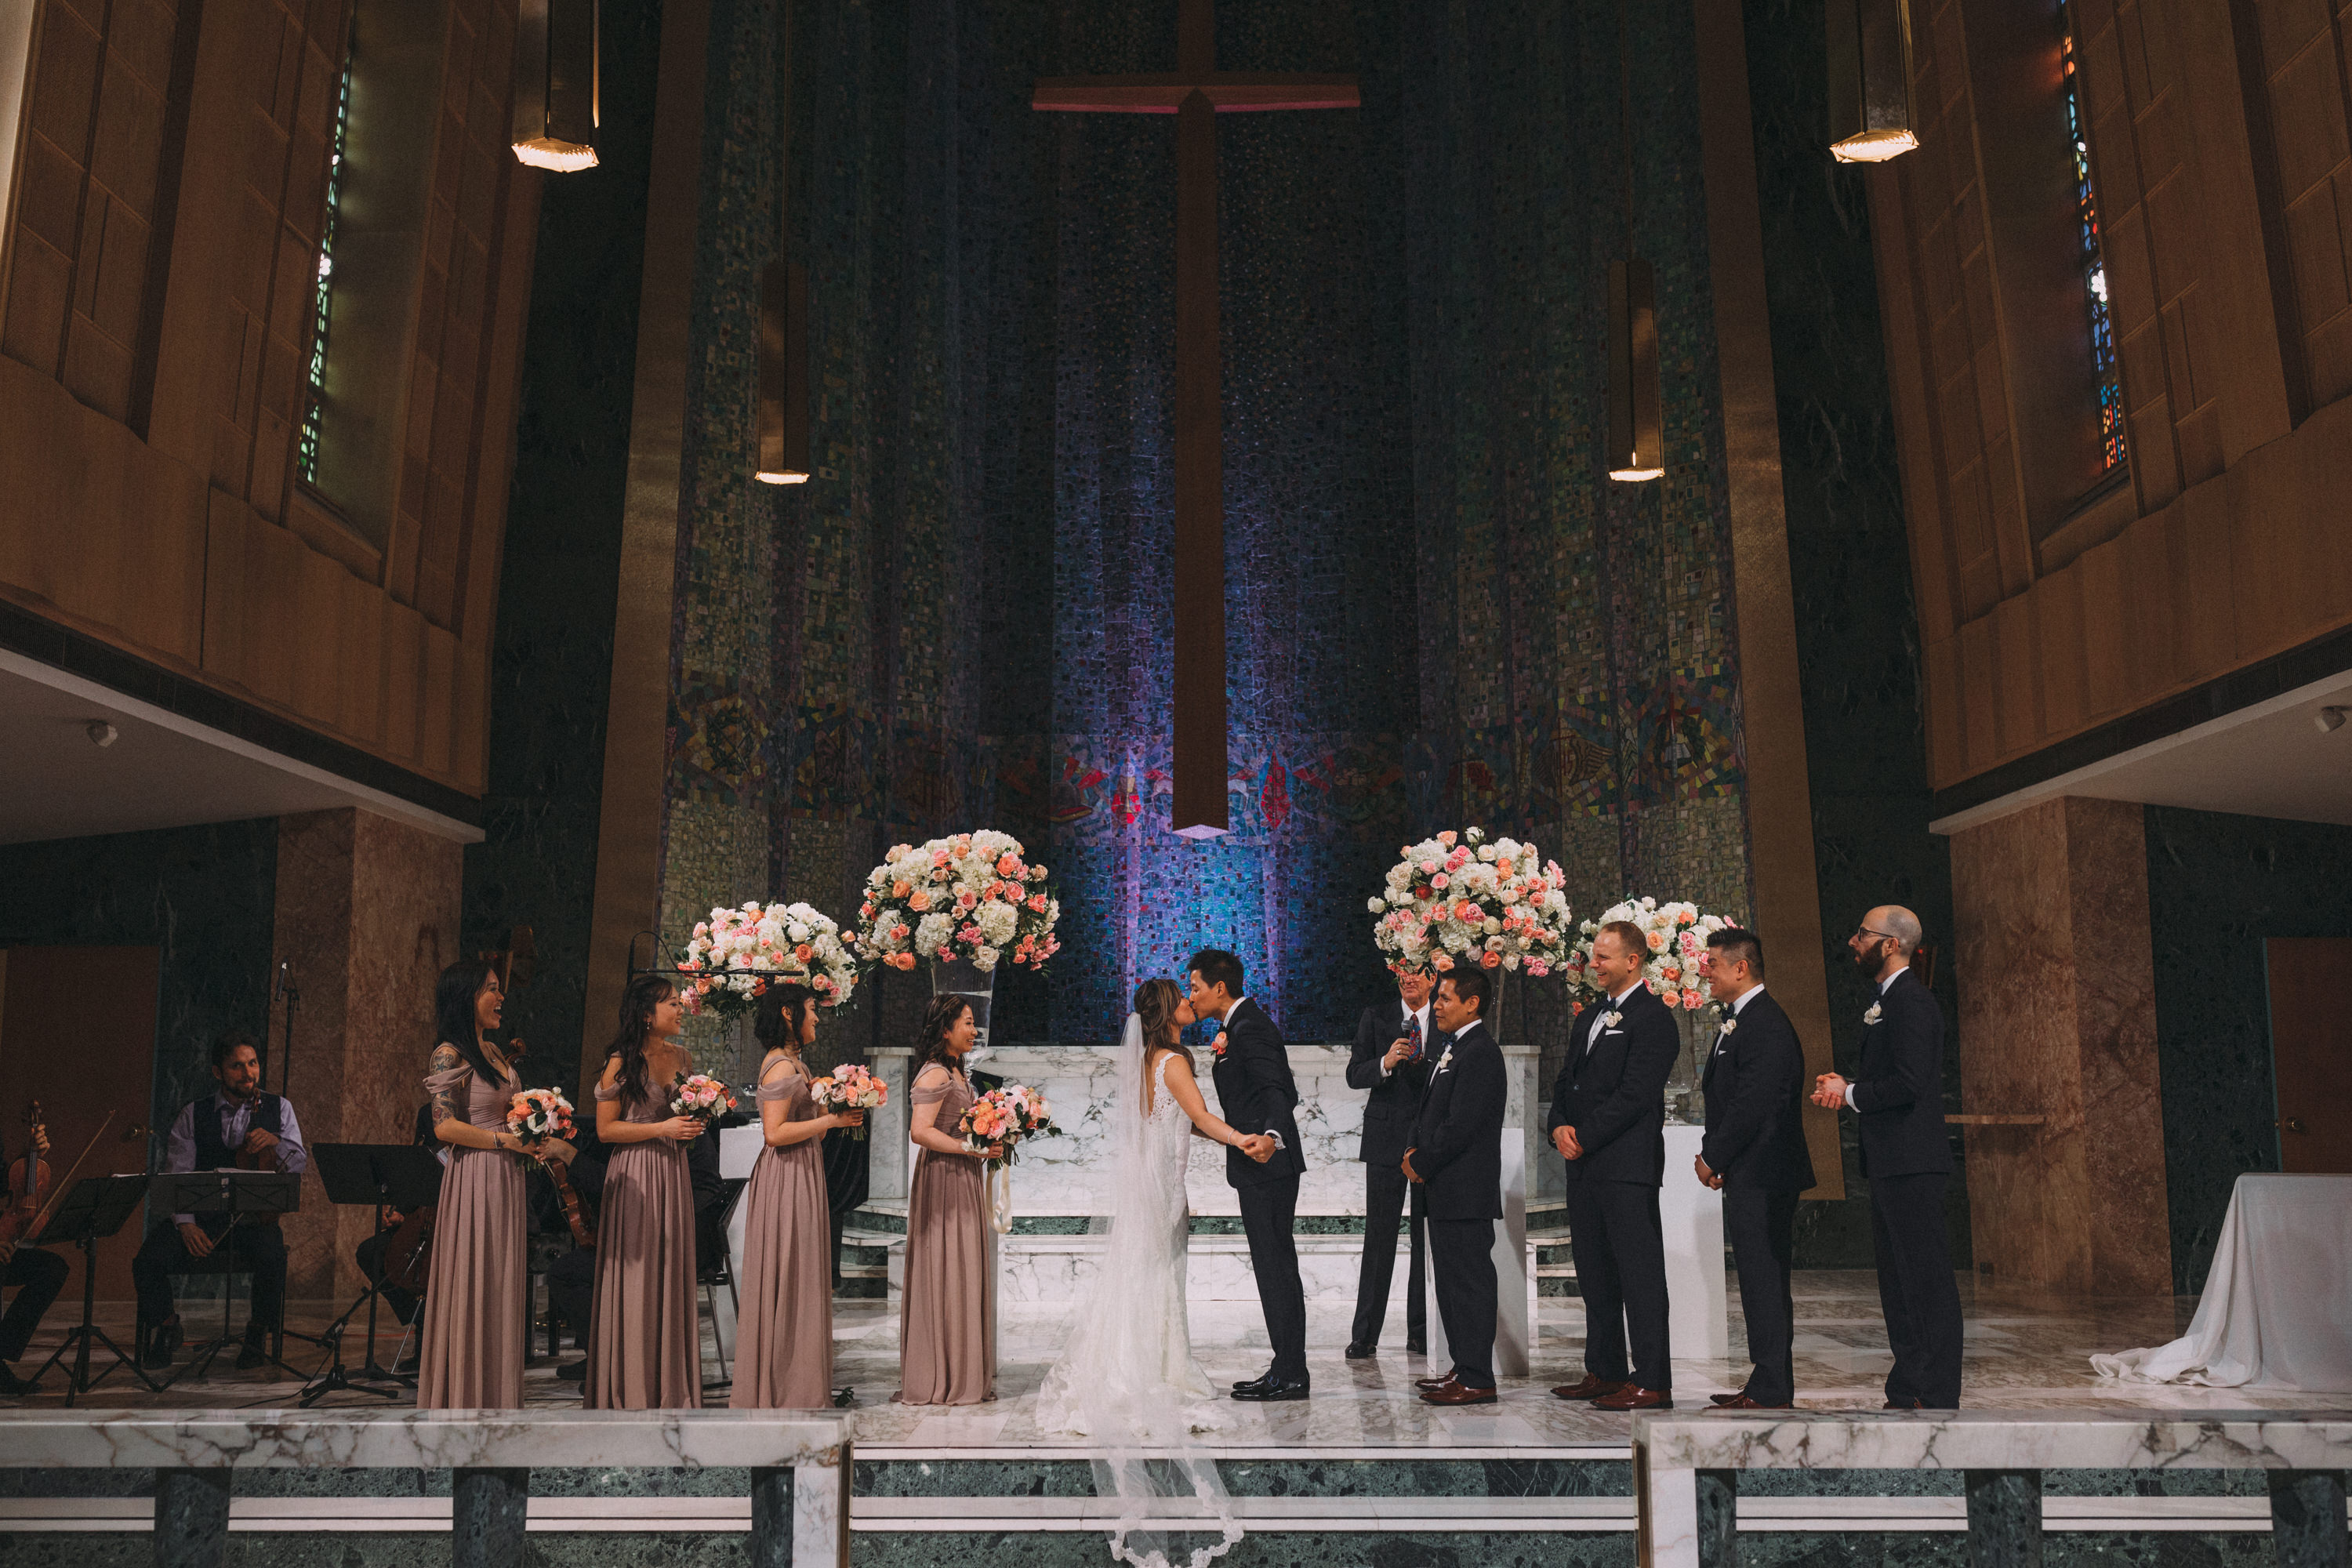 Tyndale University wedding